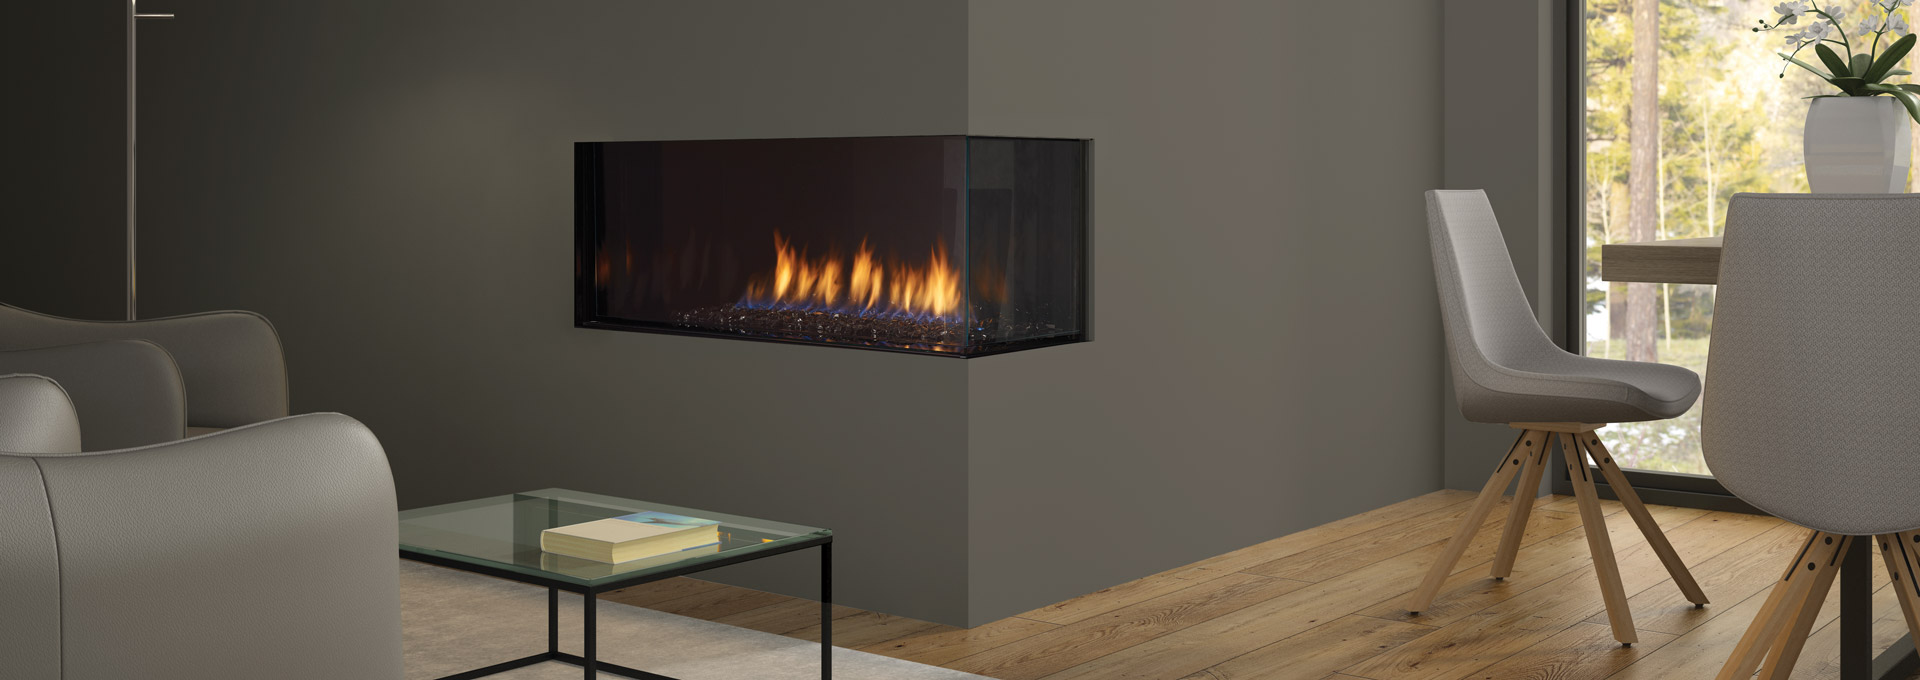 Regency city series chicago corner 40re modern gas for Modern gas fireplace price